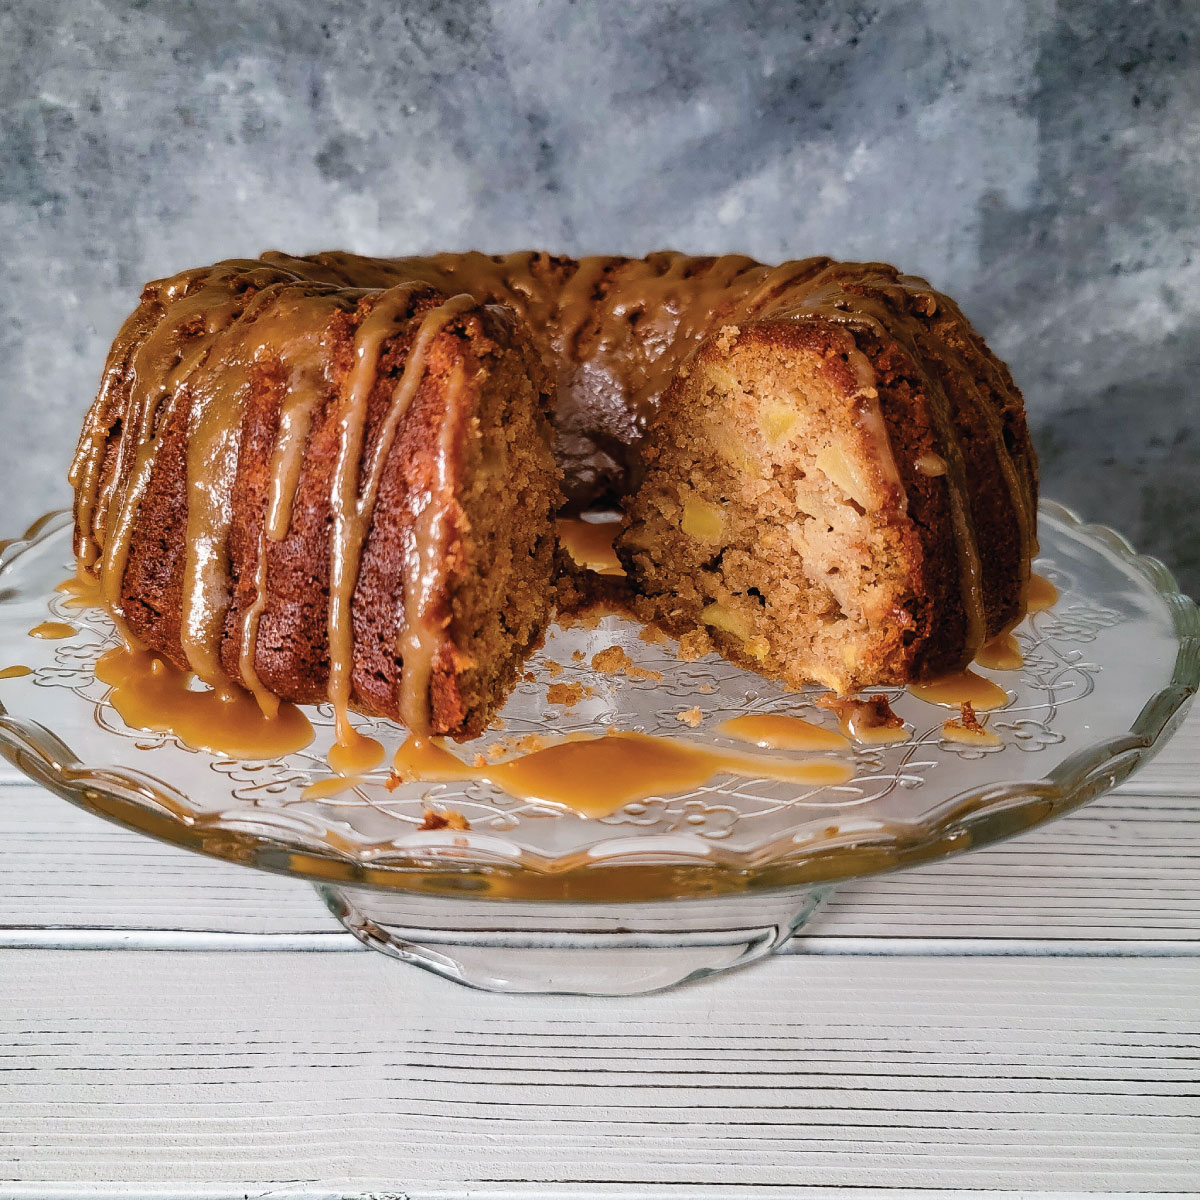 Apple cake with caramel drizzled over the top on a cake platter with a piece of cake cut out to show the apples on the inside.